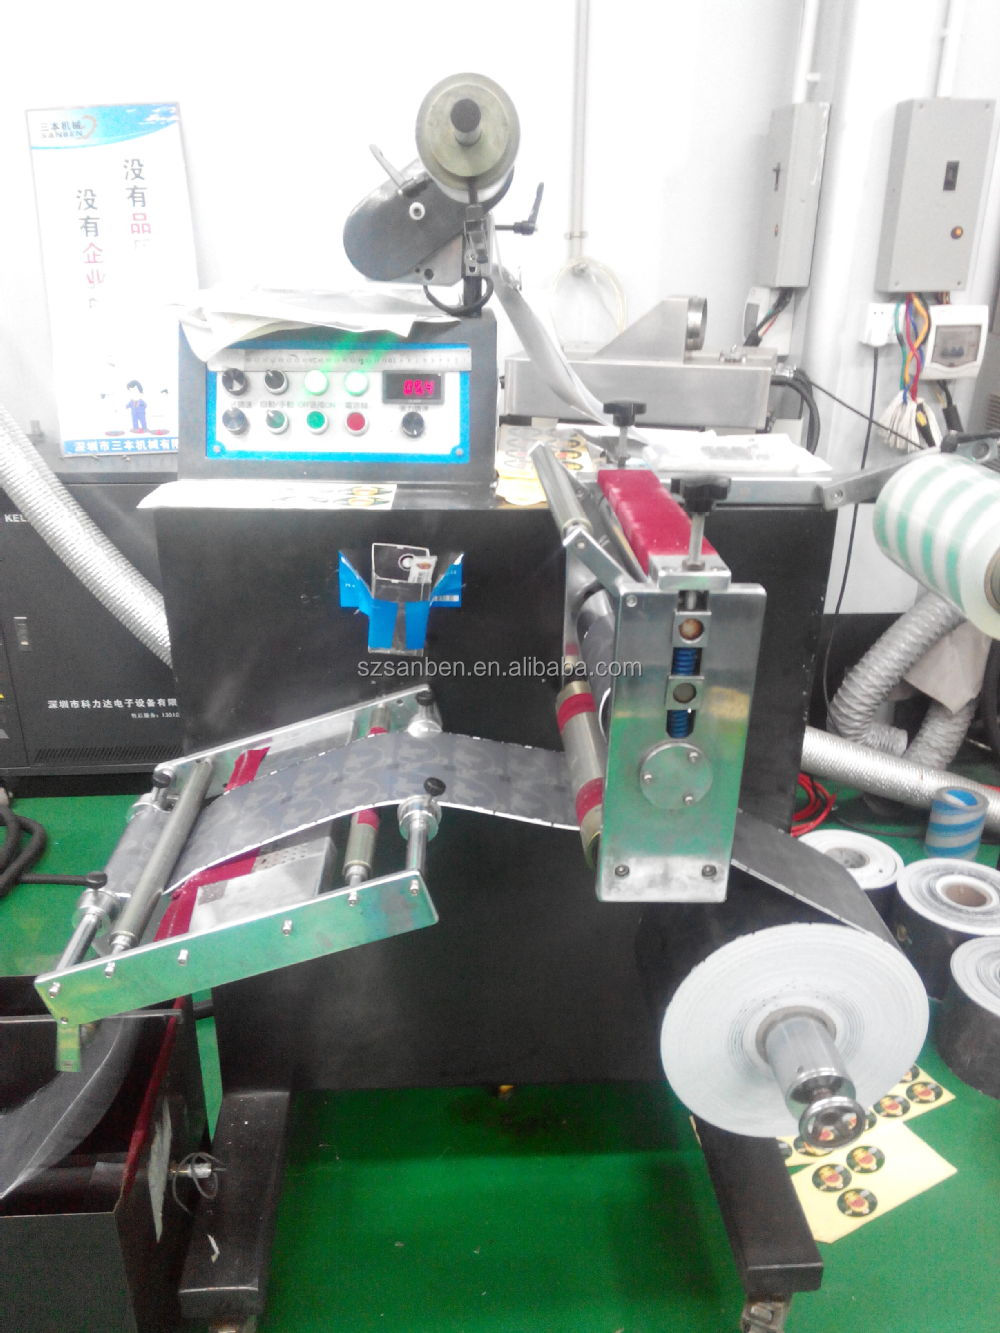 8 Color Uv Printer (sbl-280) Intermittent Rotary Automatic Fabric ...